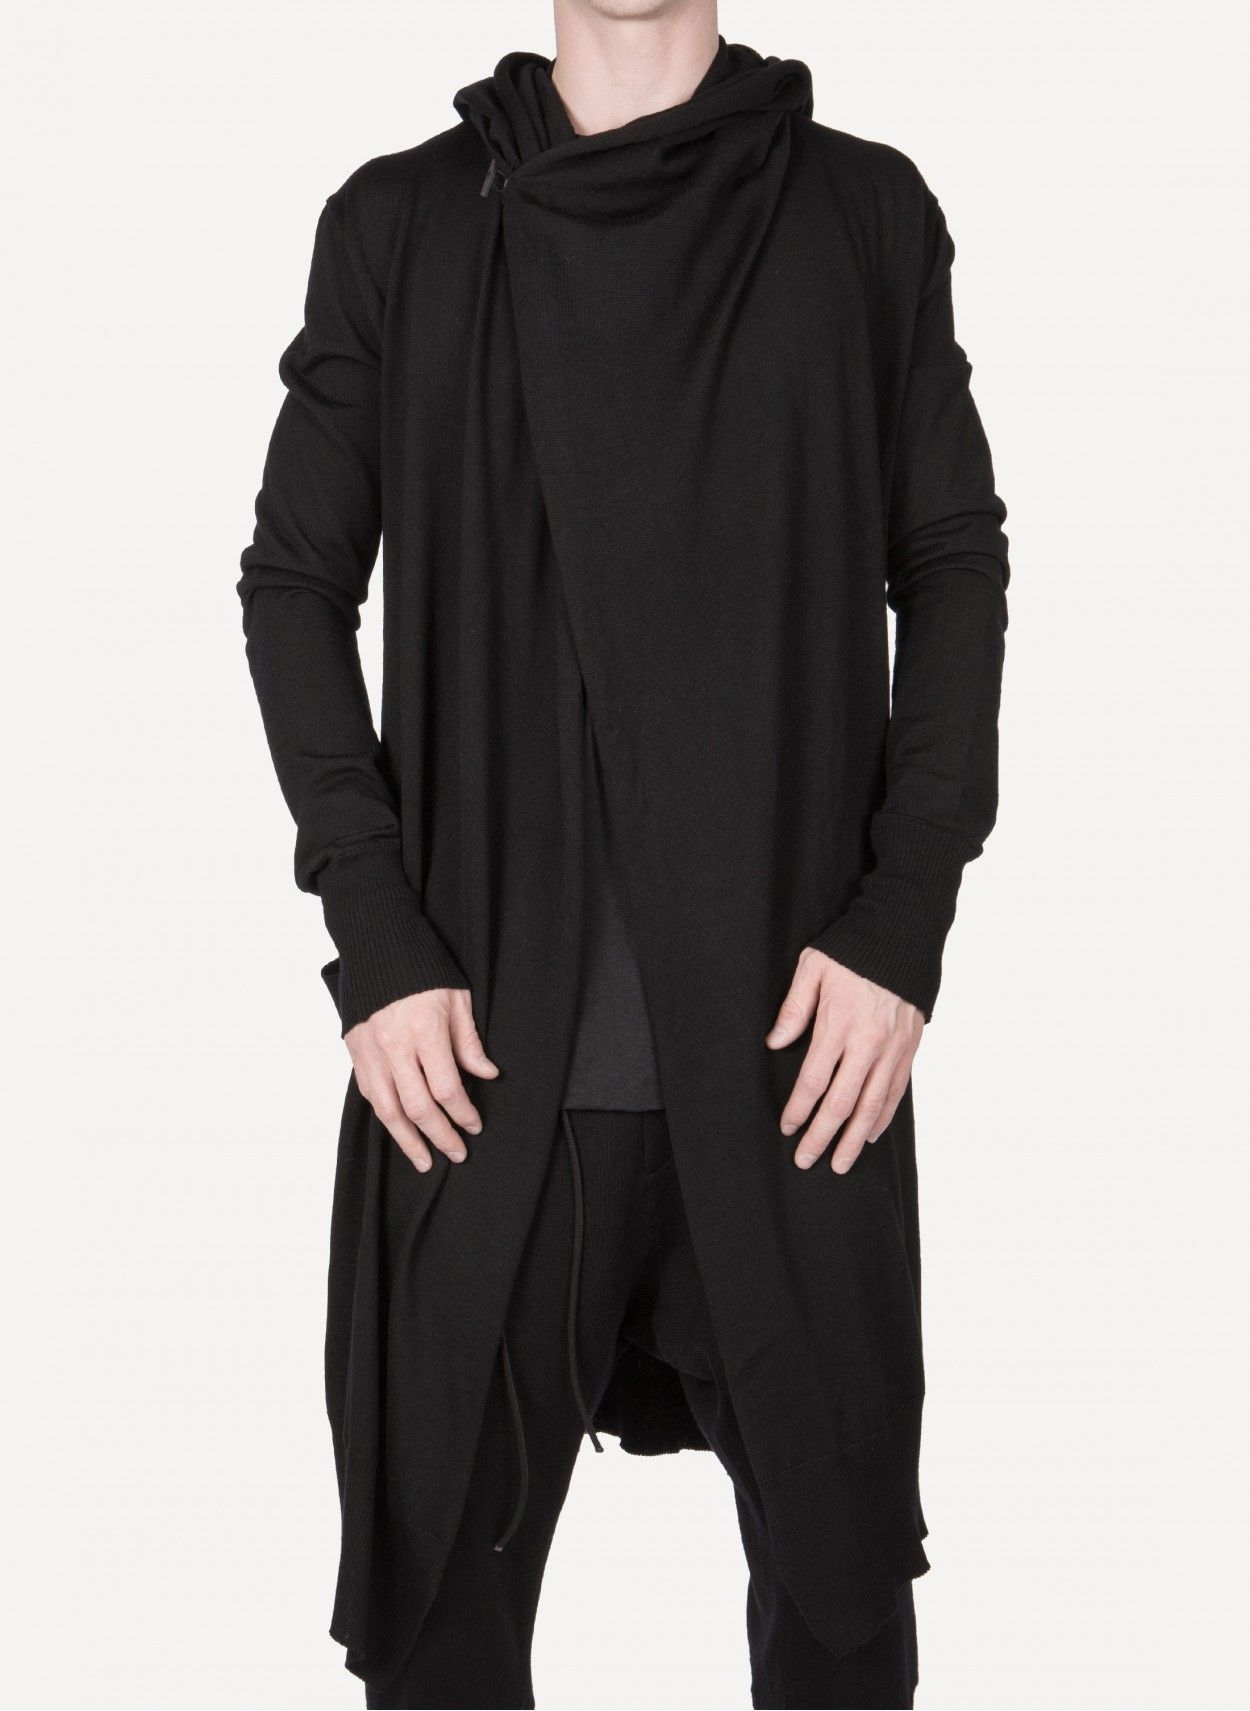 Pin By Cruvoir On Æther Hooded Cardigan Mens Fashion 515c652ef